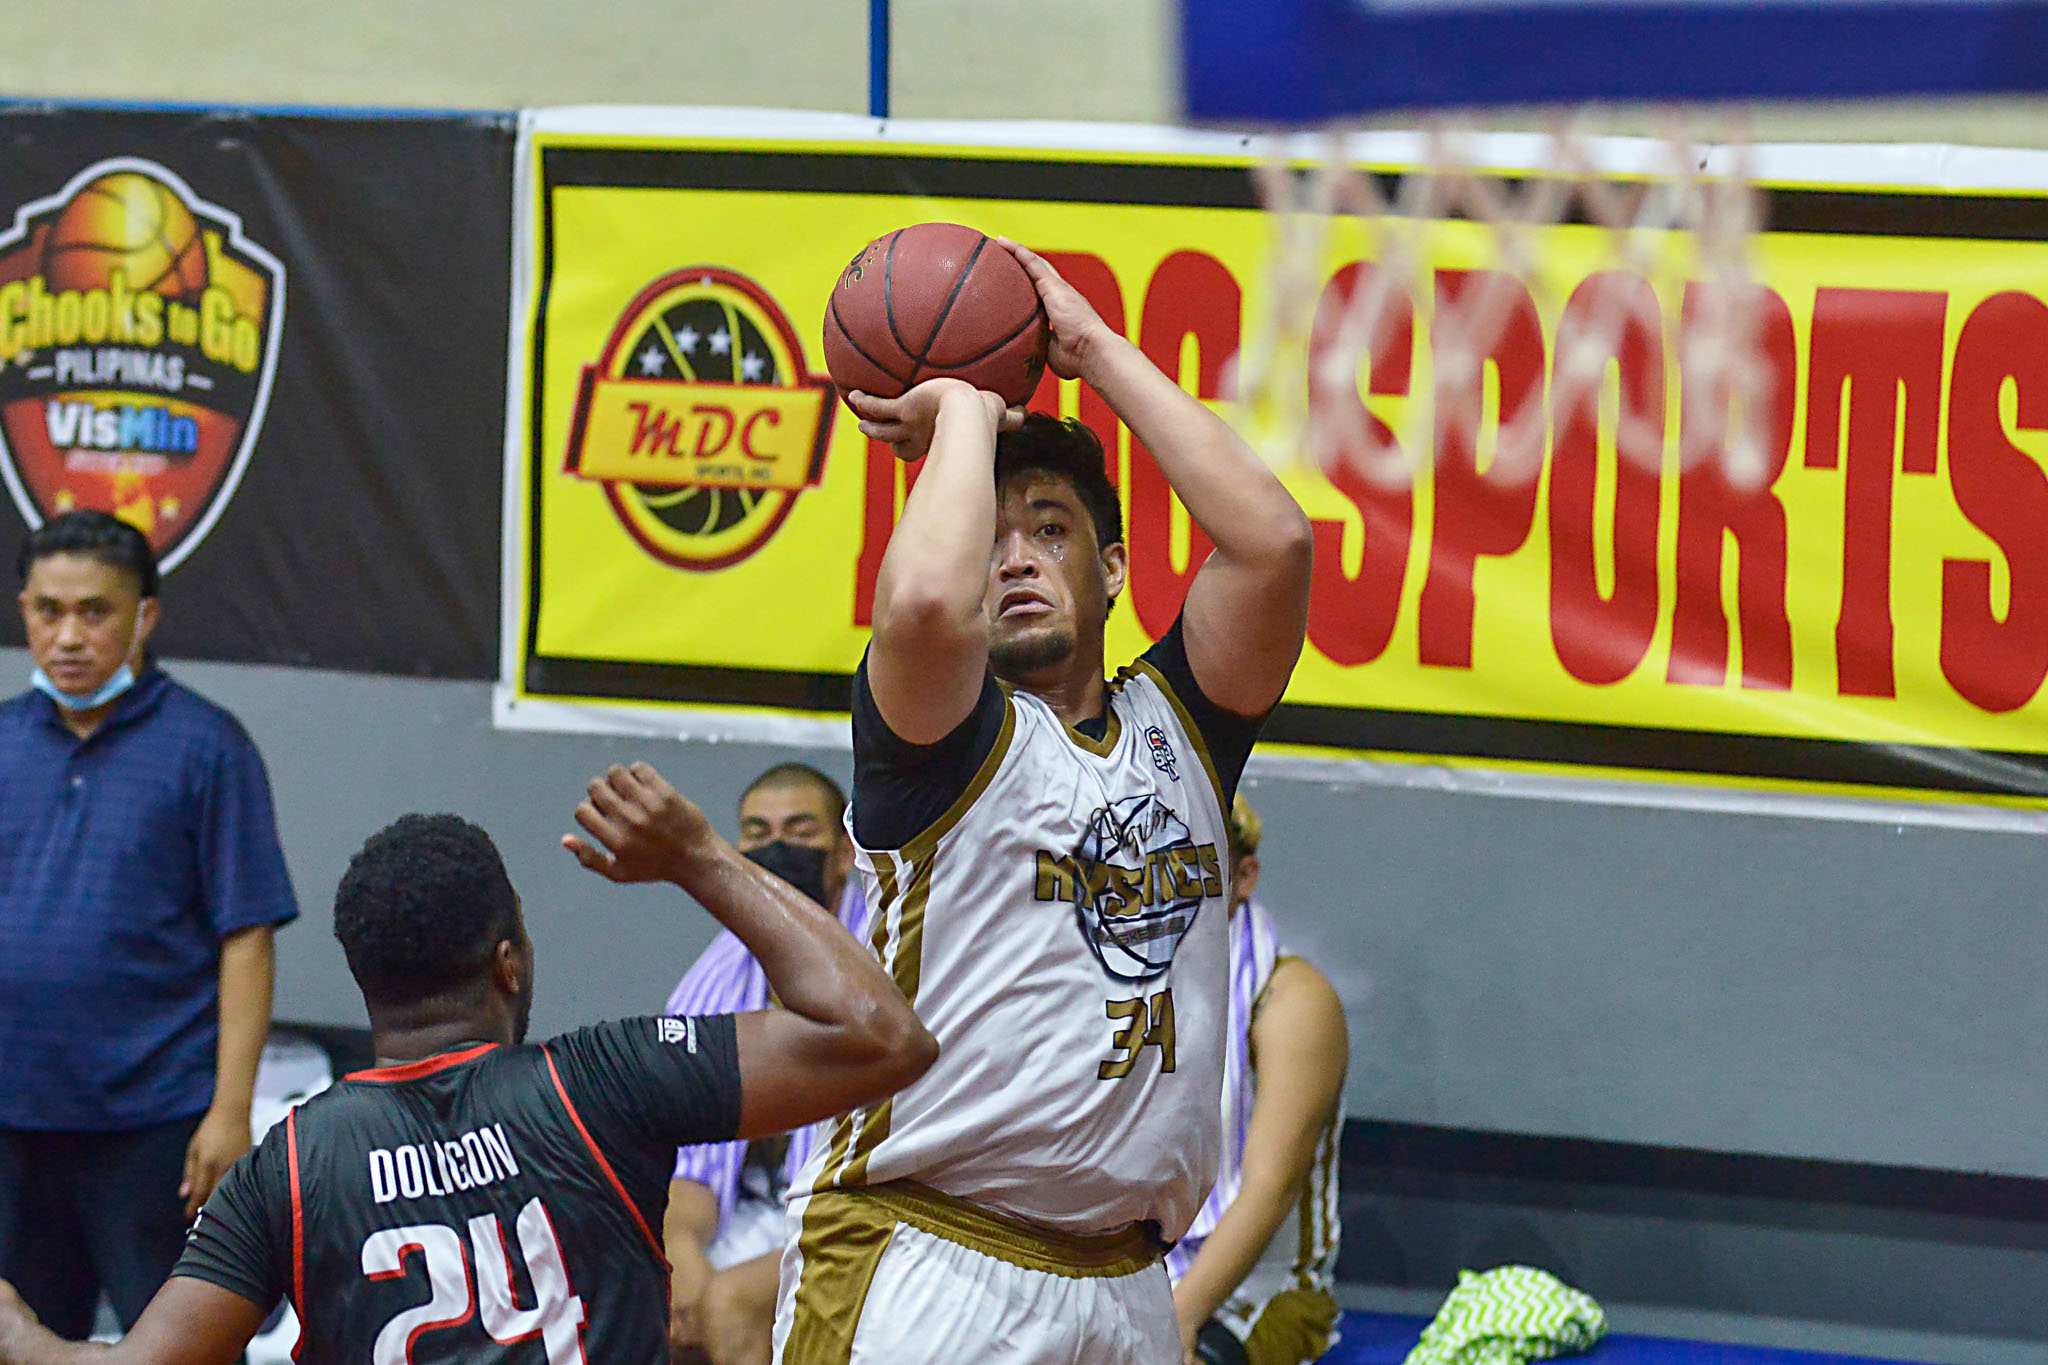 2020-Chooks-to-Go-Pilipinas-VisMin-Super-Cup-Visayas-Leg-Siquijor-def-Dumaguete-Ryan-Buenafe Ryan Buenafe has no regrets as he fulfilled his duty as a brother Basketball News VisMin Super Cup  - philippine sports news